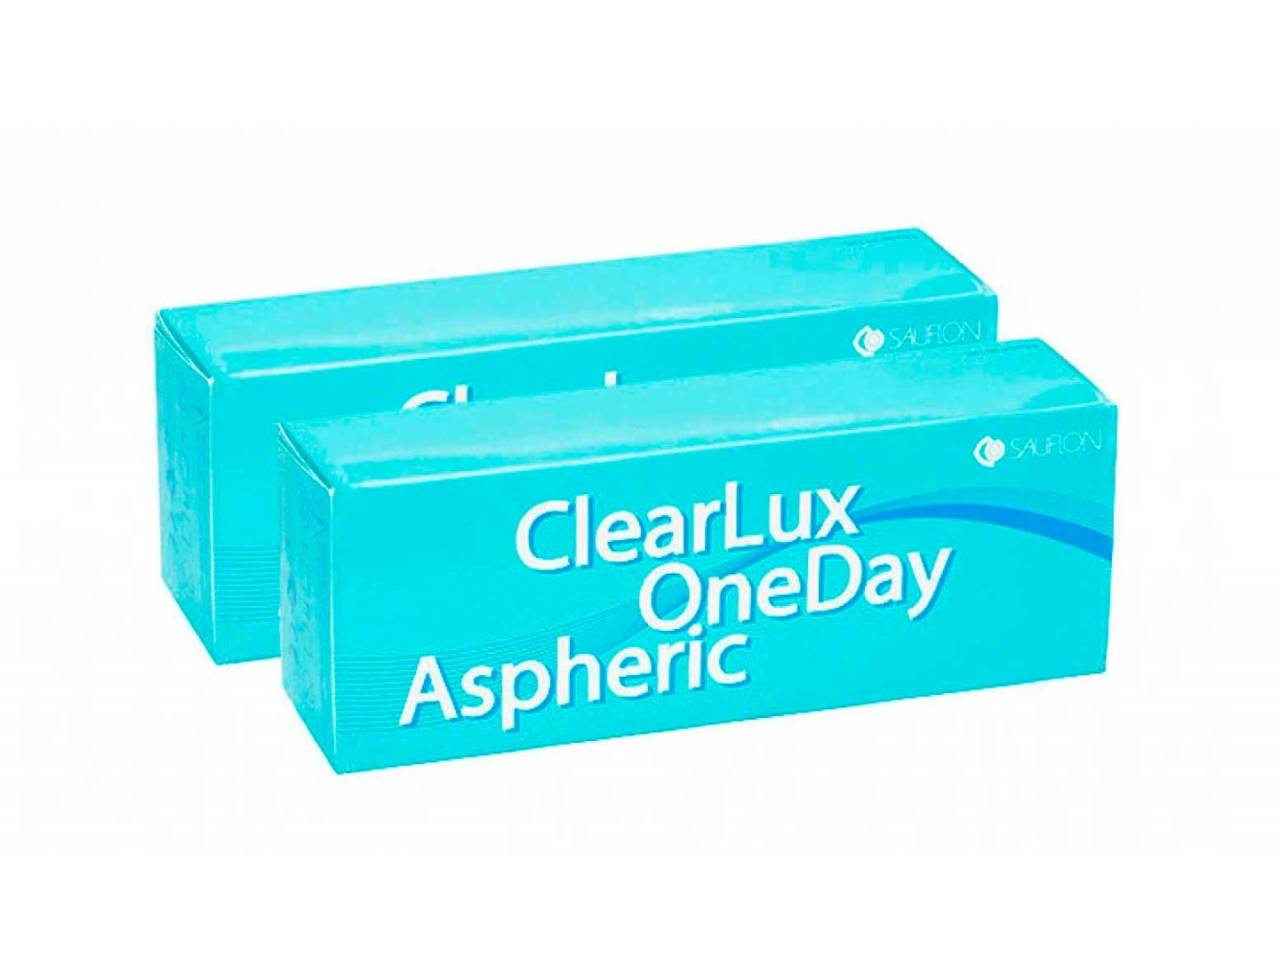 ClearLux One Day Aspheric - 2 упаковки (-3%) - Фото №7